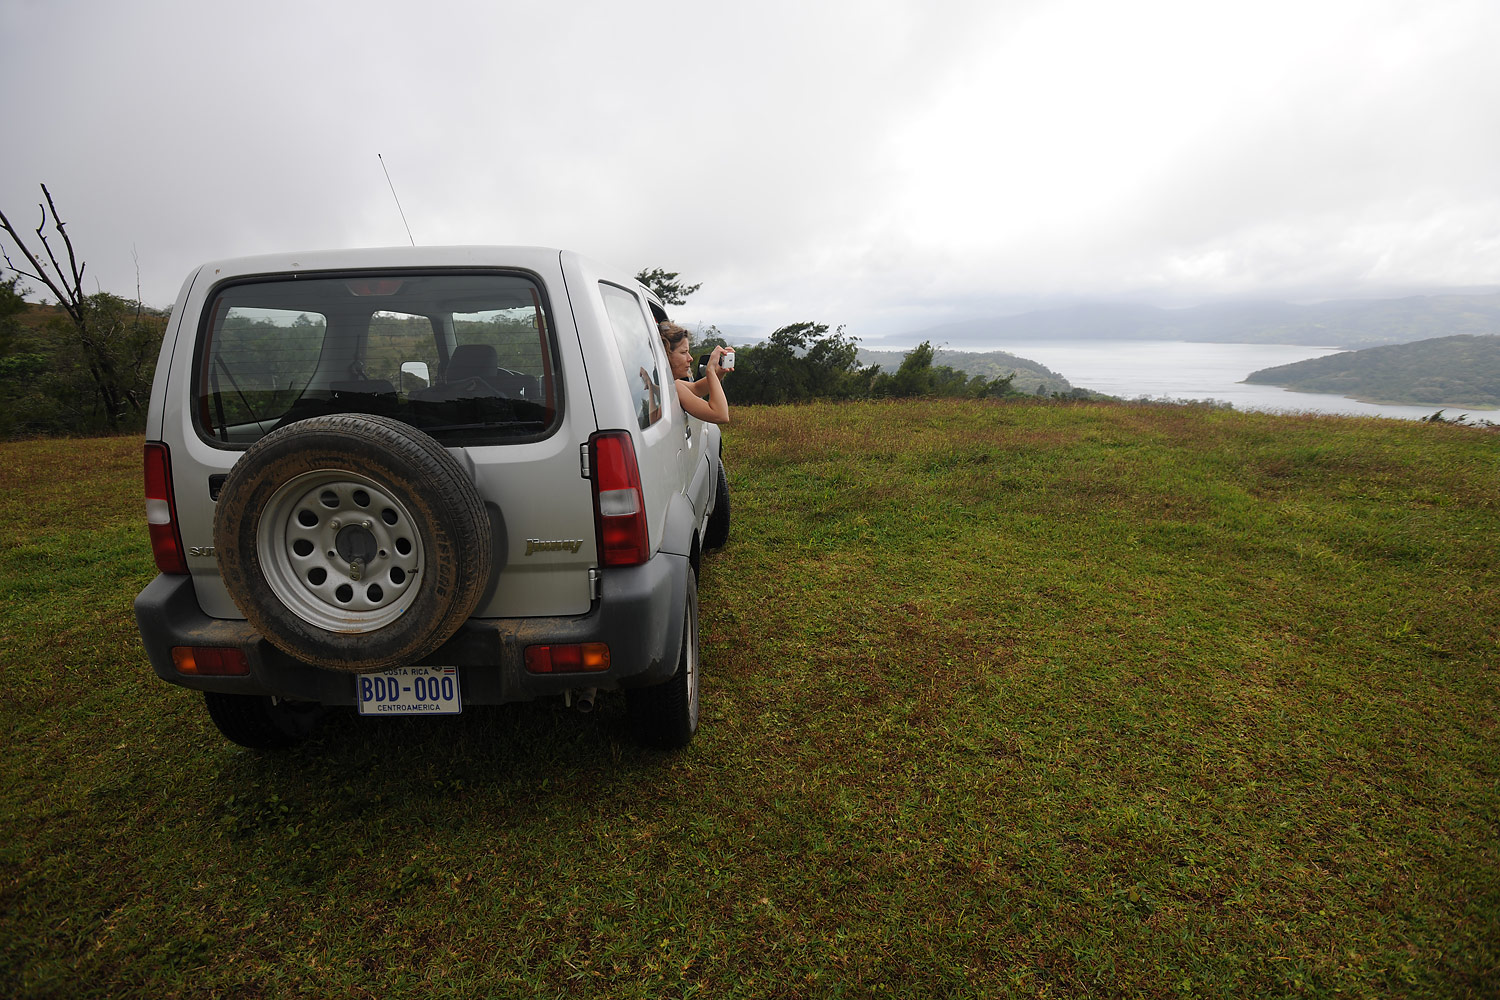 Miriam shooting the scene from the Jimny.